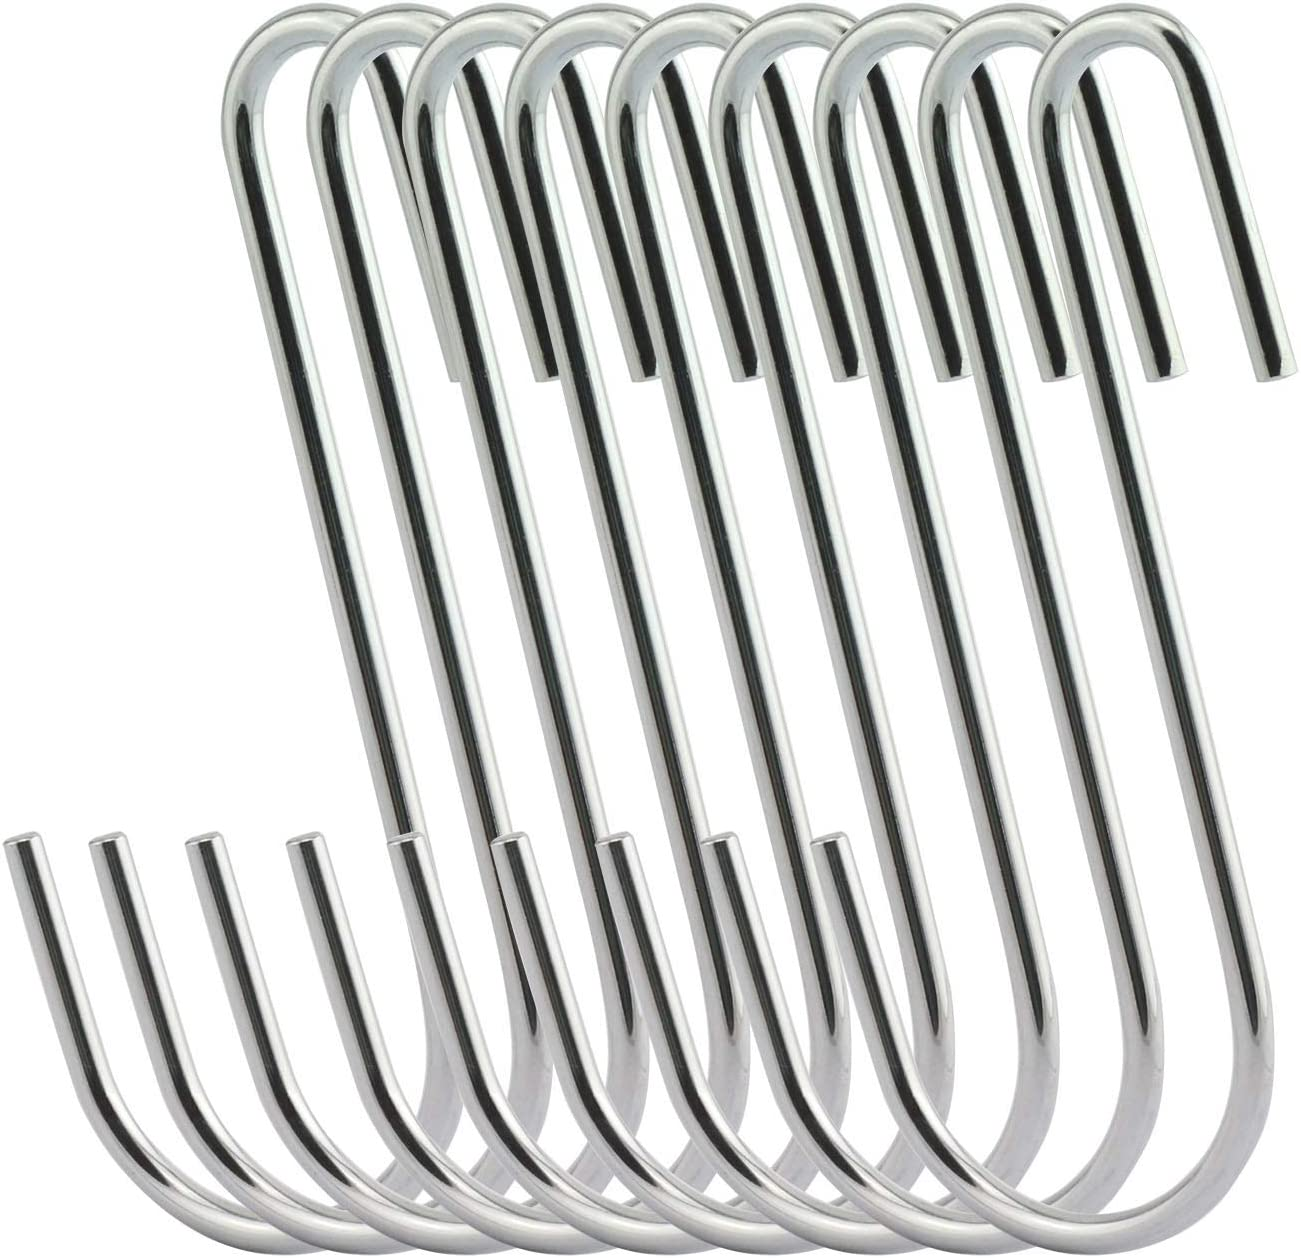 NX Garden 12PCS 4 Inches Silver S Hook Cookware Universal Pot Rack Hooks Steel Chrome Finish Sturdy Hanging Hook for Kitchenware Pots Utensils Towels